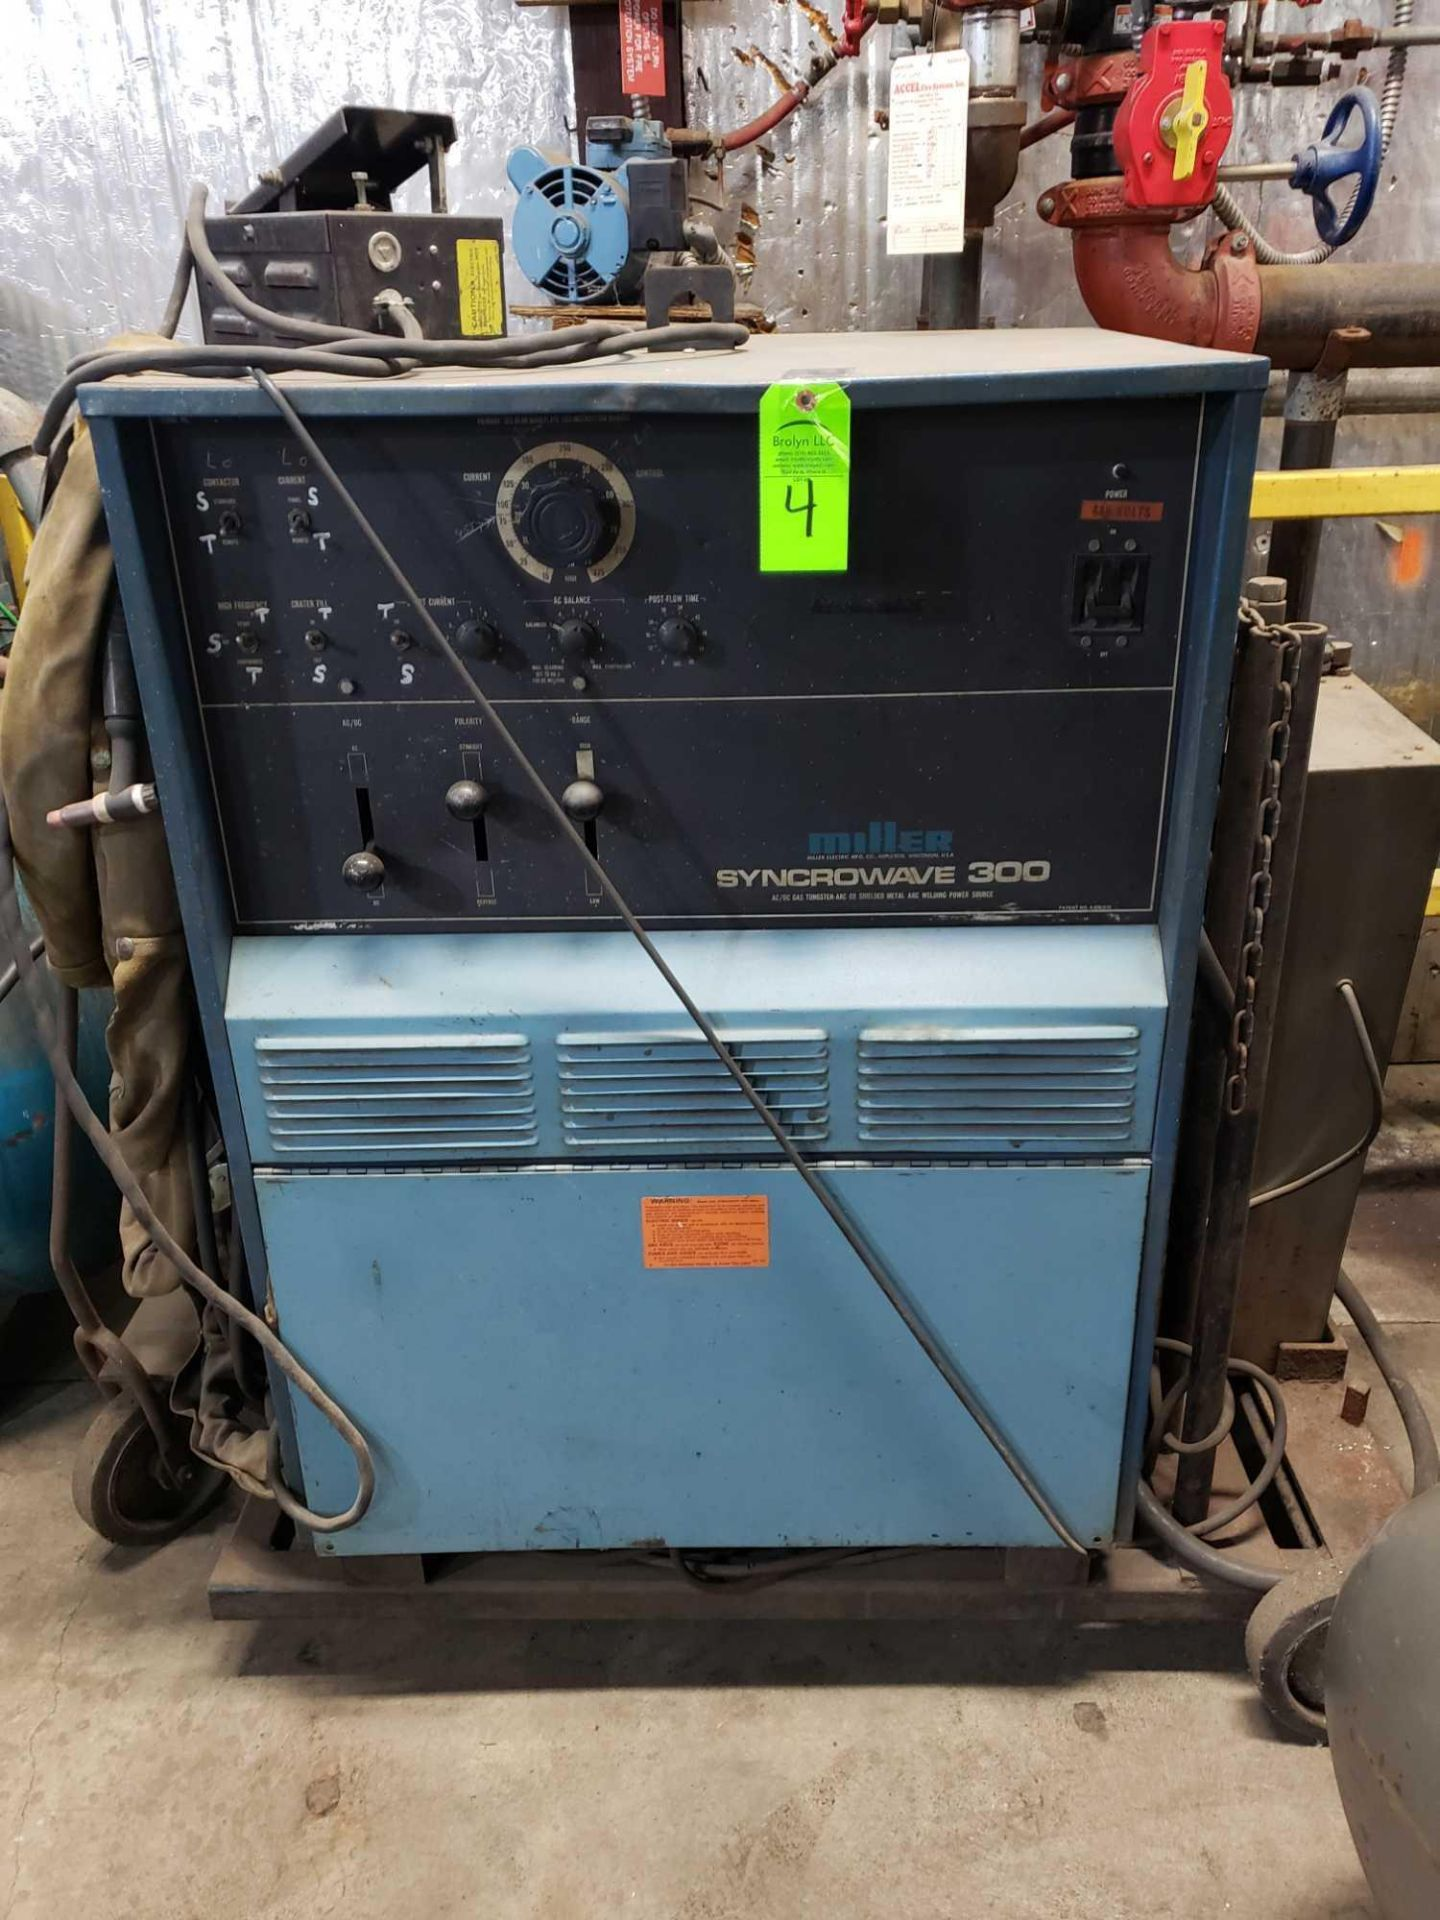 Lot 4 - Miller Syncrowave 300 welder with tig leads, miller foot and L-Tec chiller control,